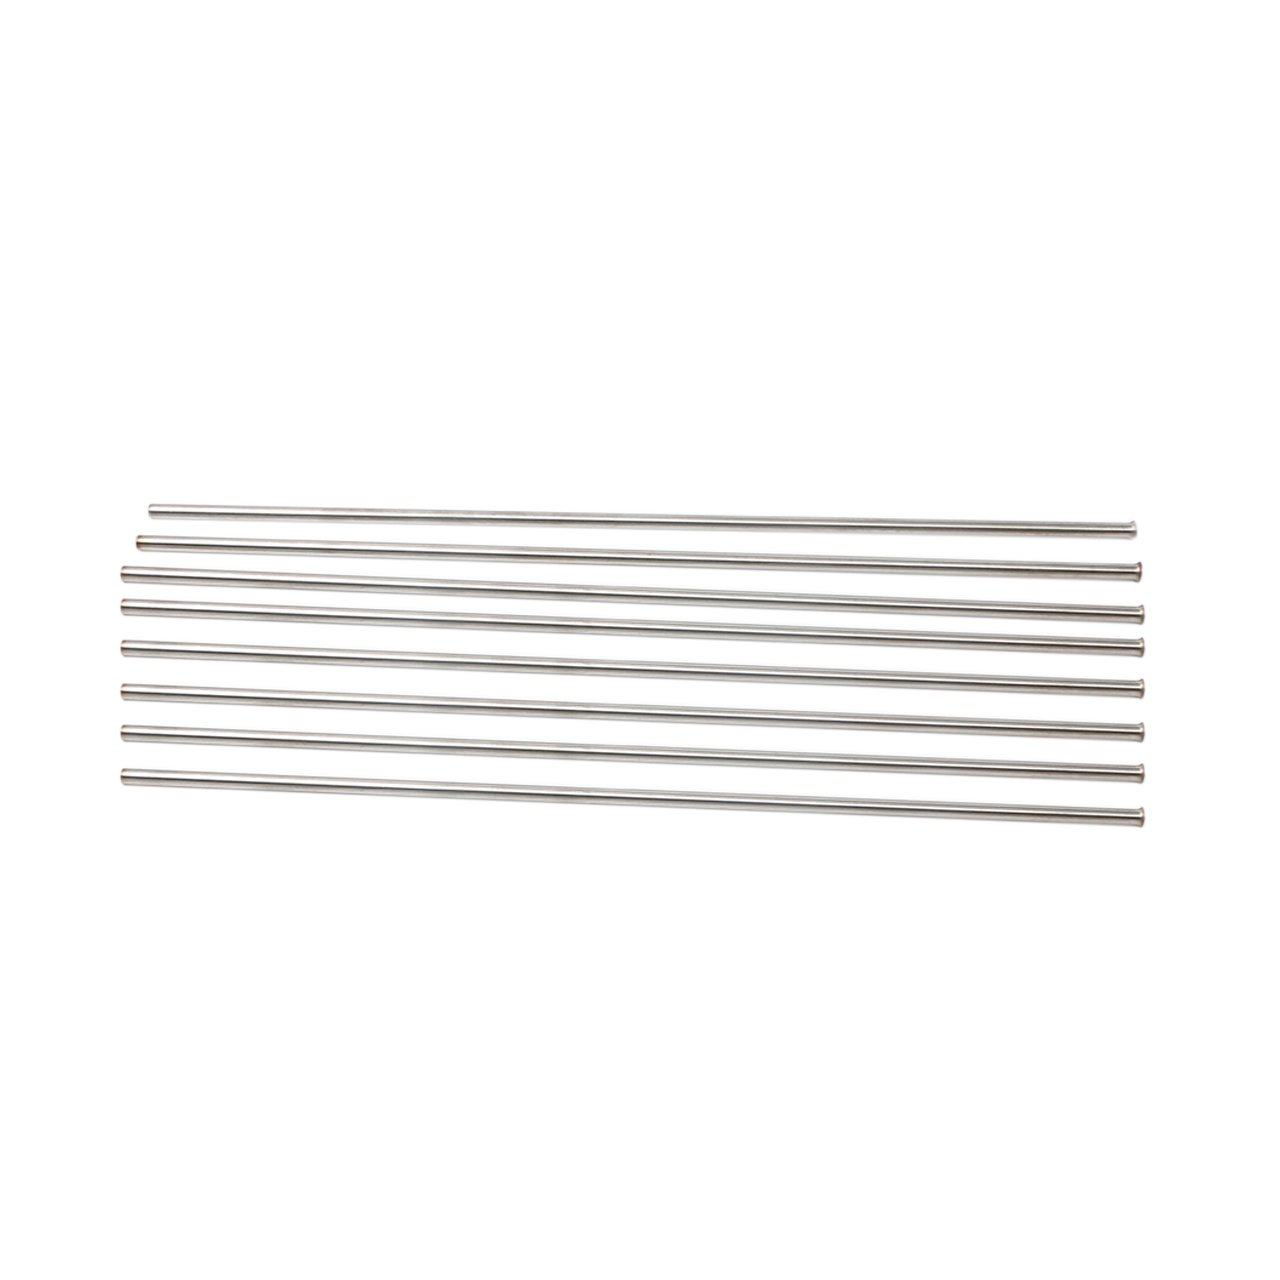 Dracary Stainless Steel Tubing 3/16'' flared Work For nitrous oxide systems NOS NEW (12'', 8 PCS)